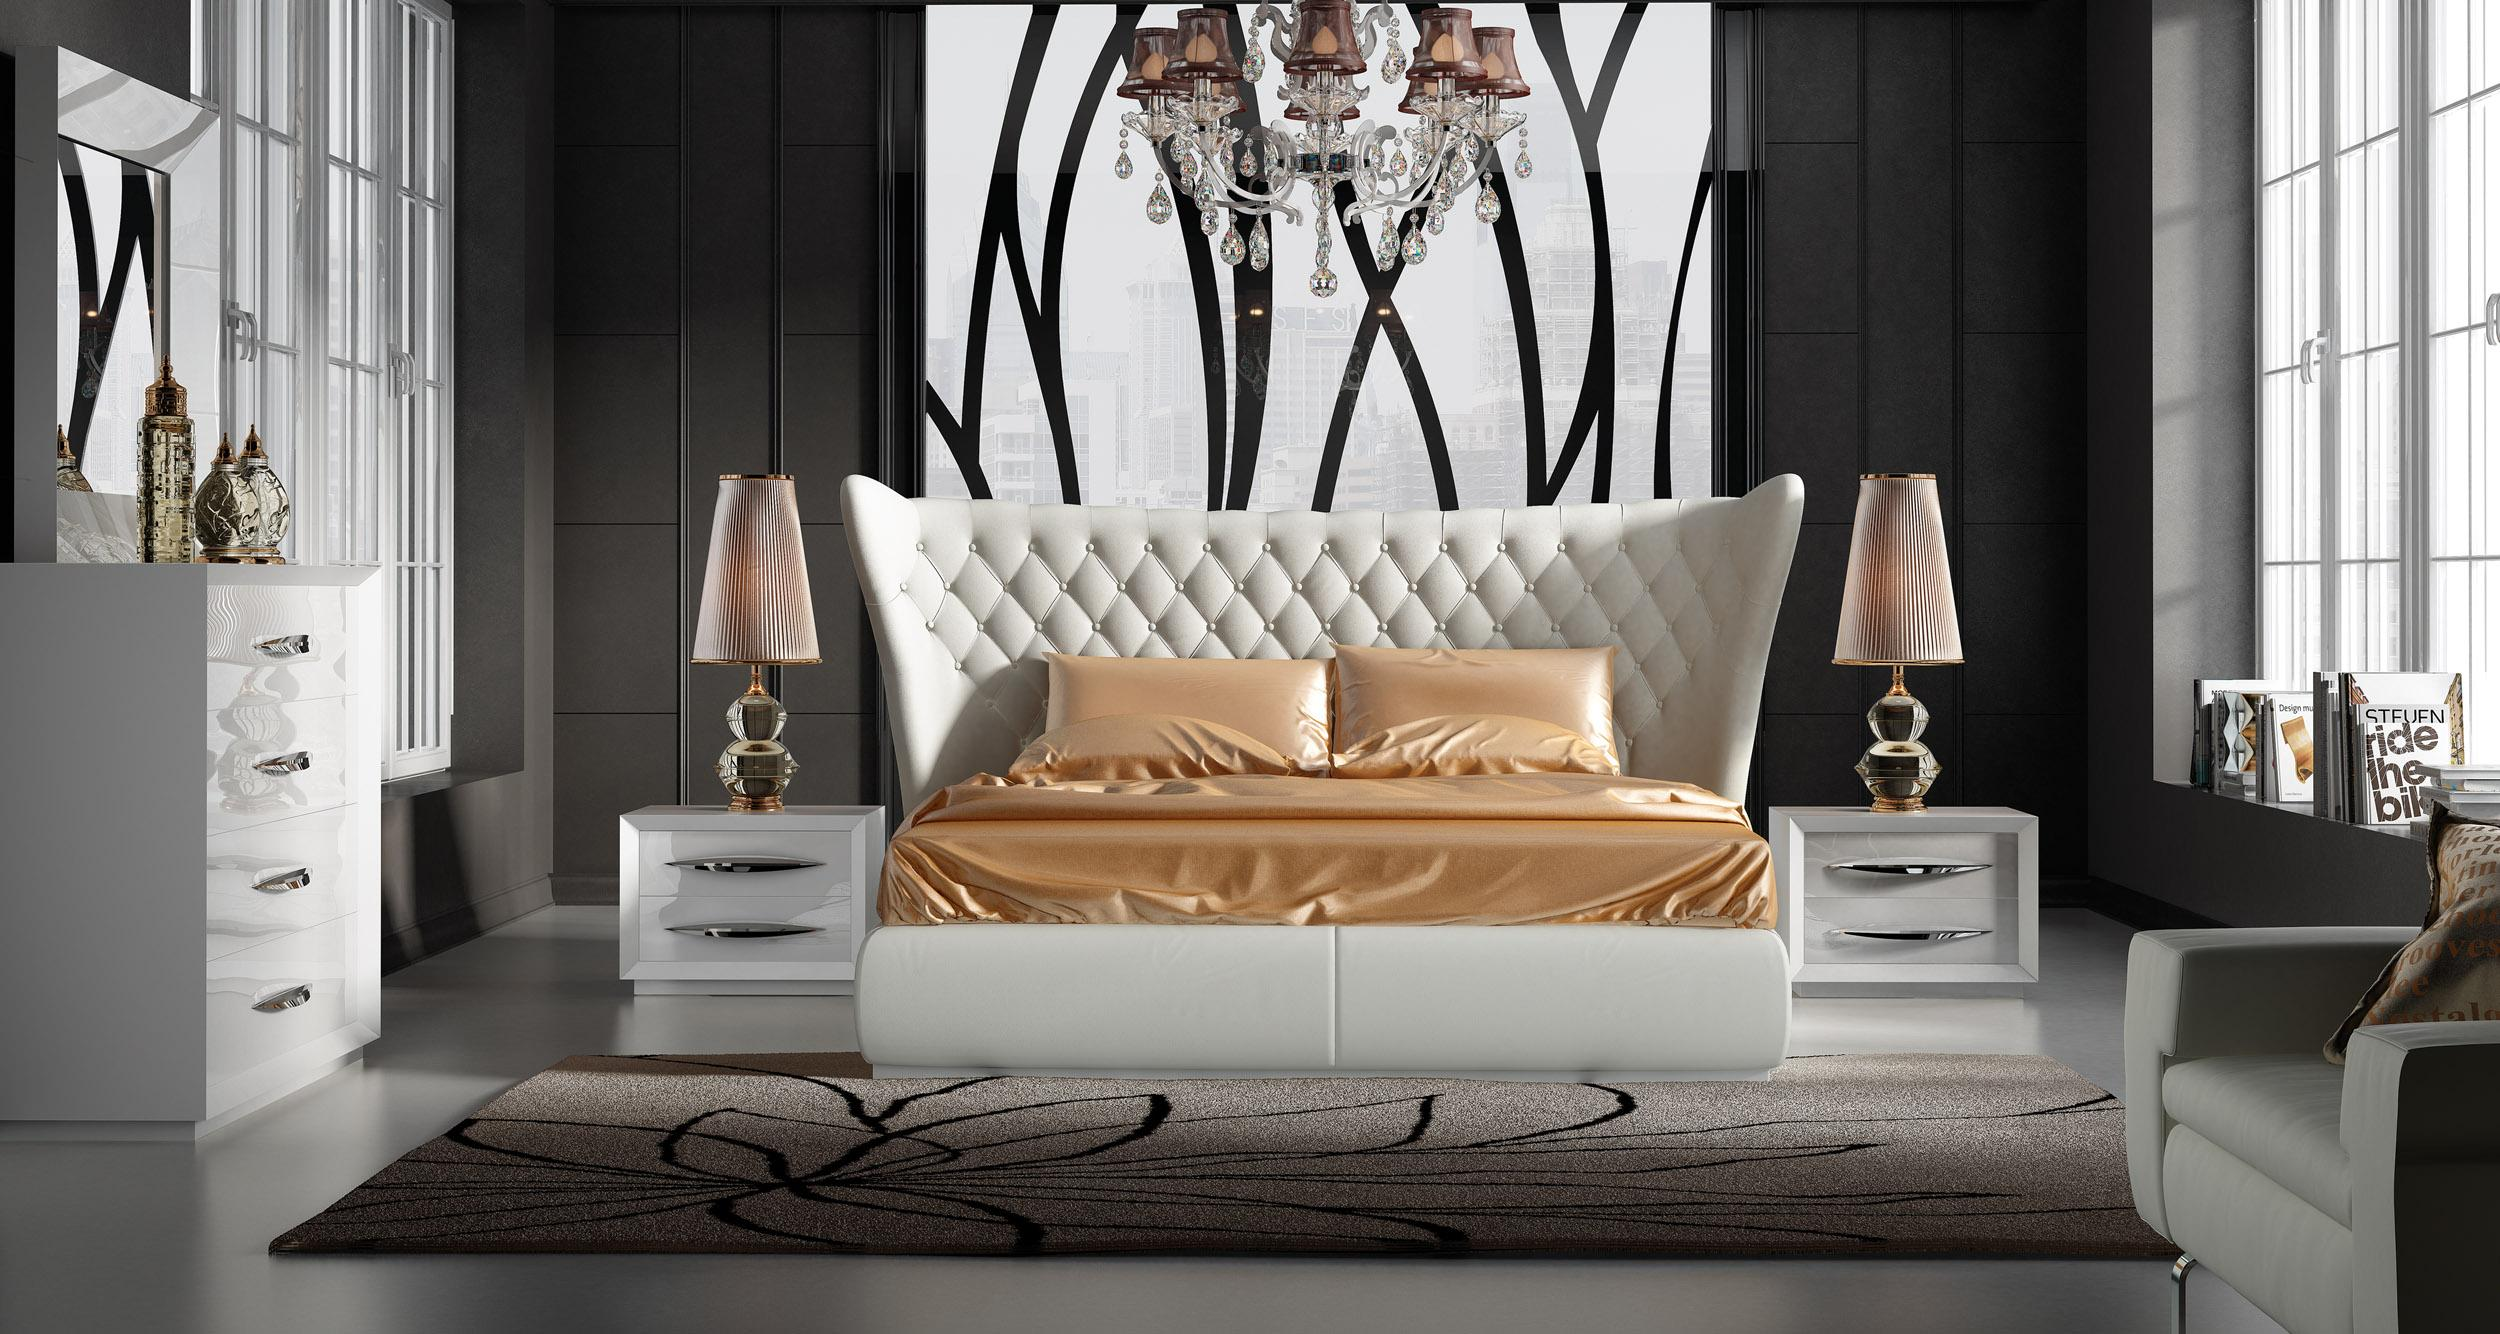 Stylish Leather Luxury Bedroom Furniture Sets Charlotte North ...